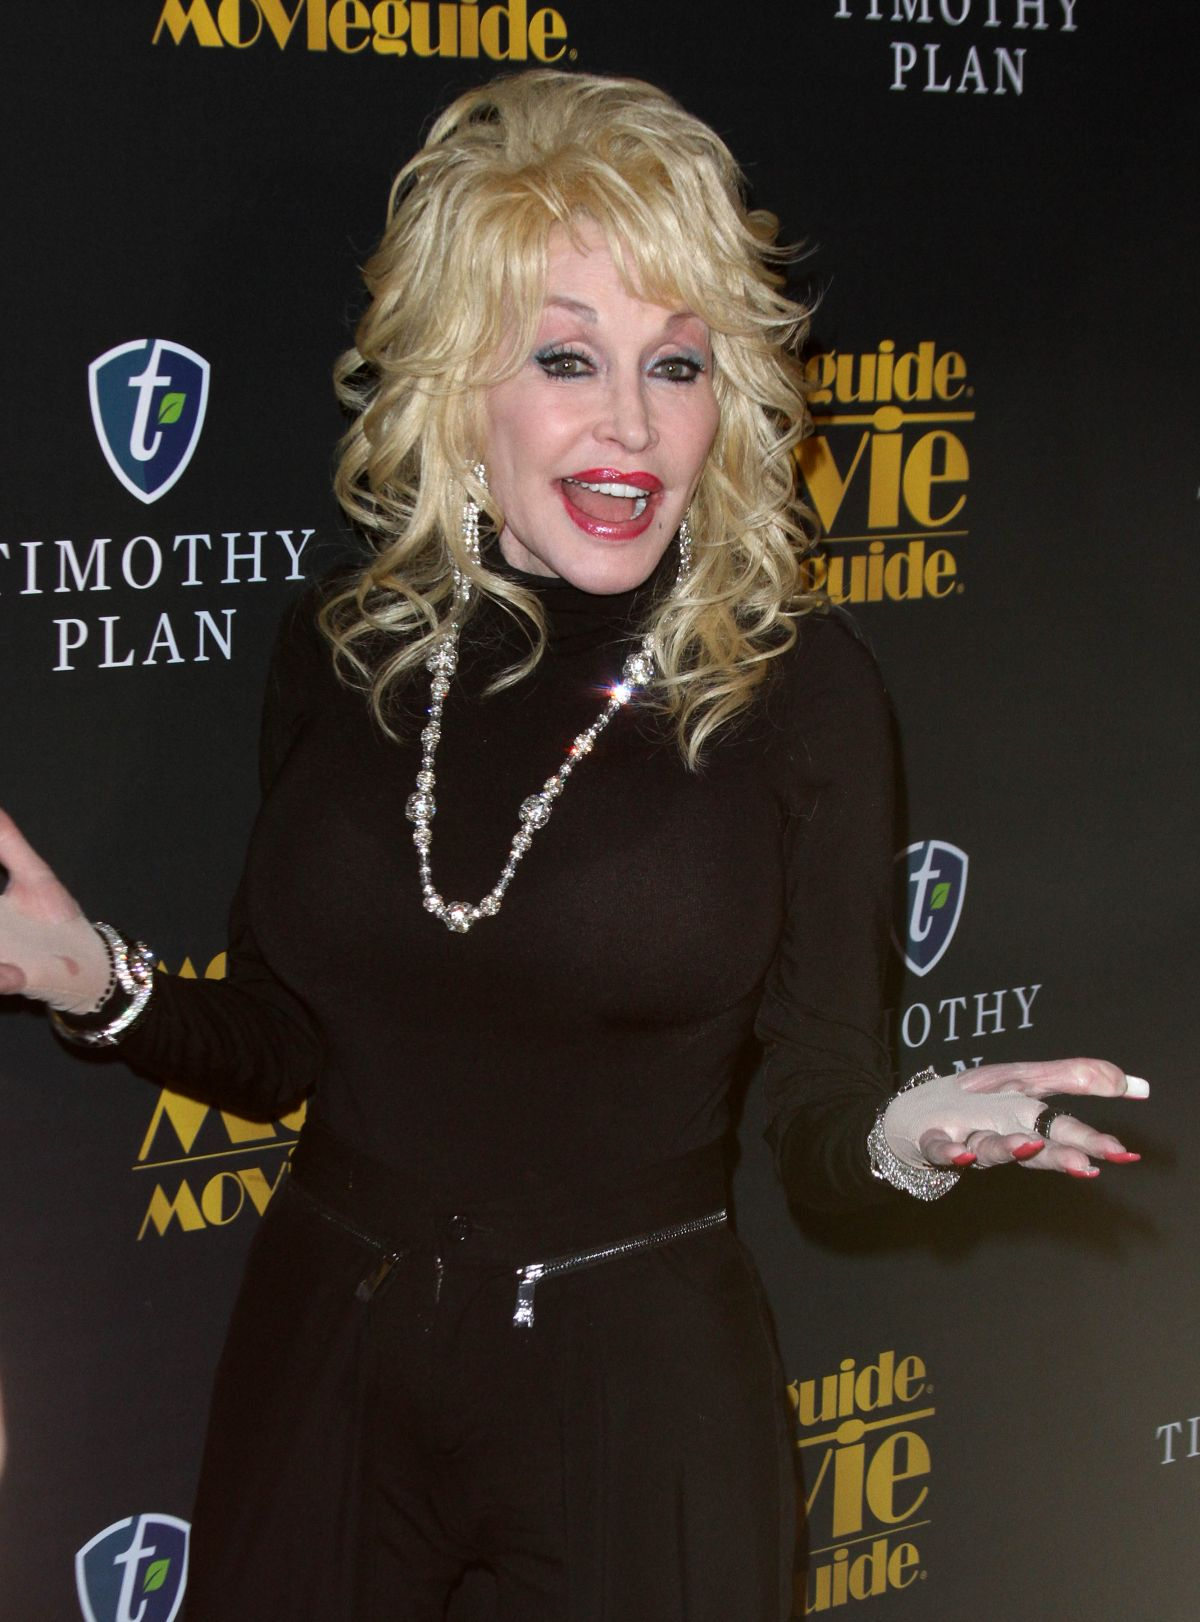 DOLLY PARTON at Movieguide Awards 2016 in Los Angeles 02/05/2016